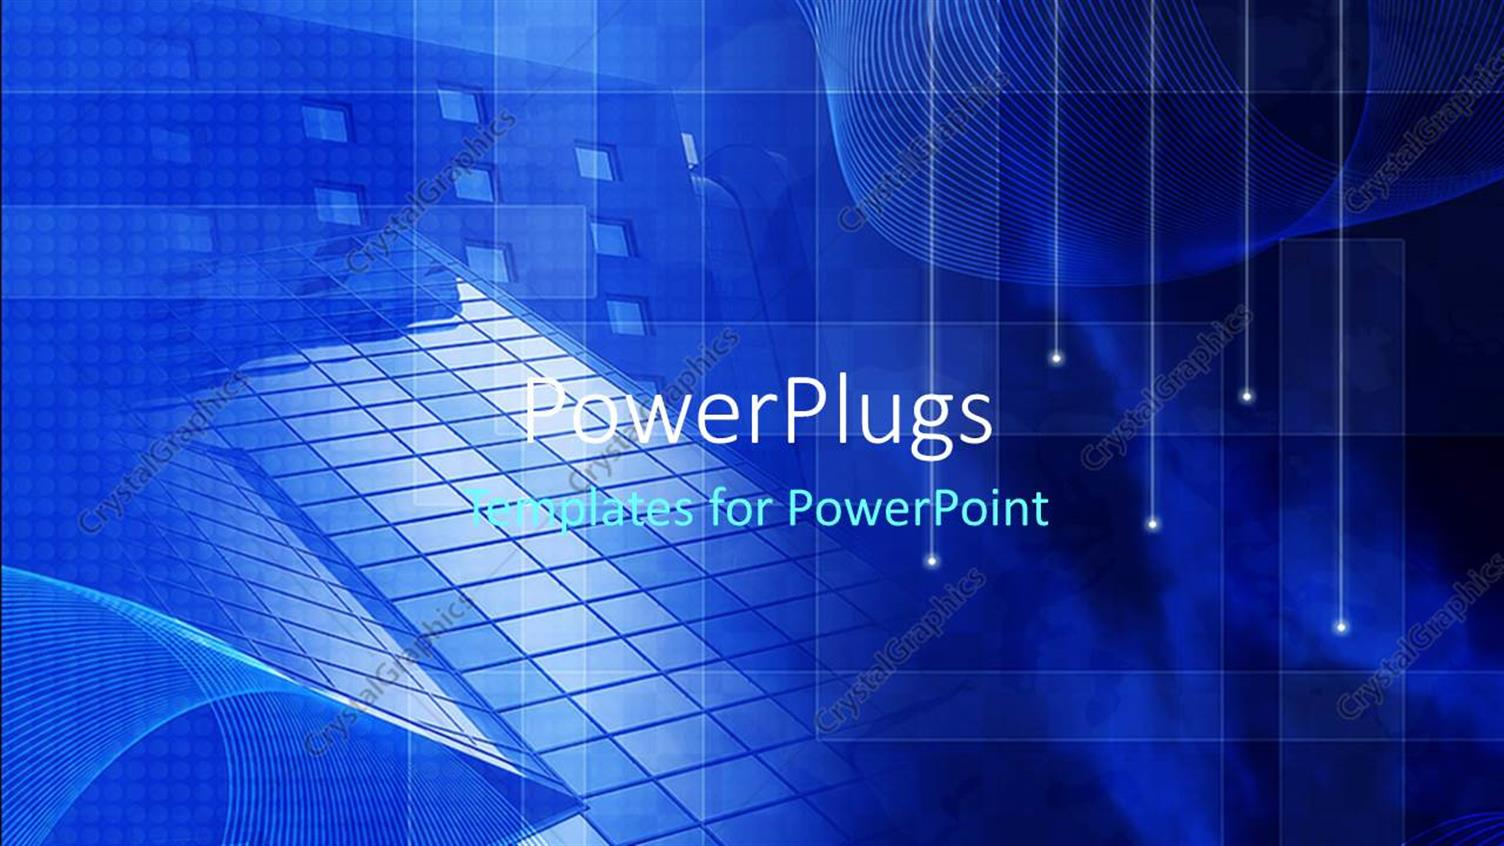 PowerPoint Template Displaying a Bluish Background with Various Objects